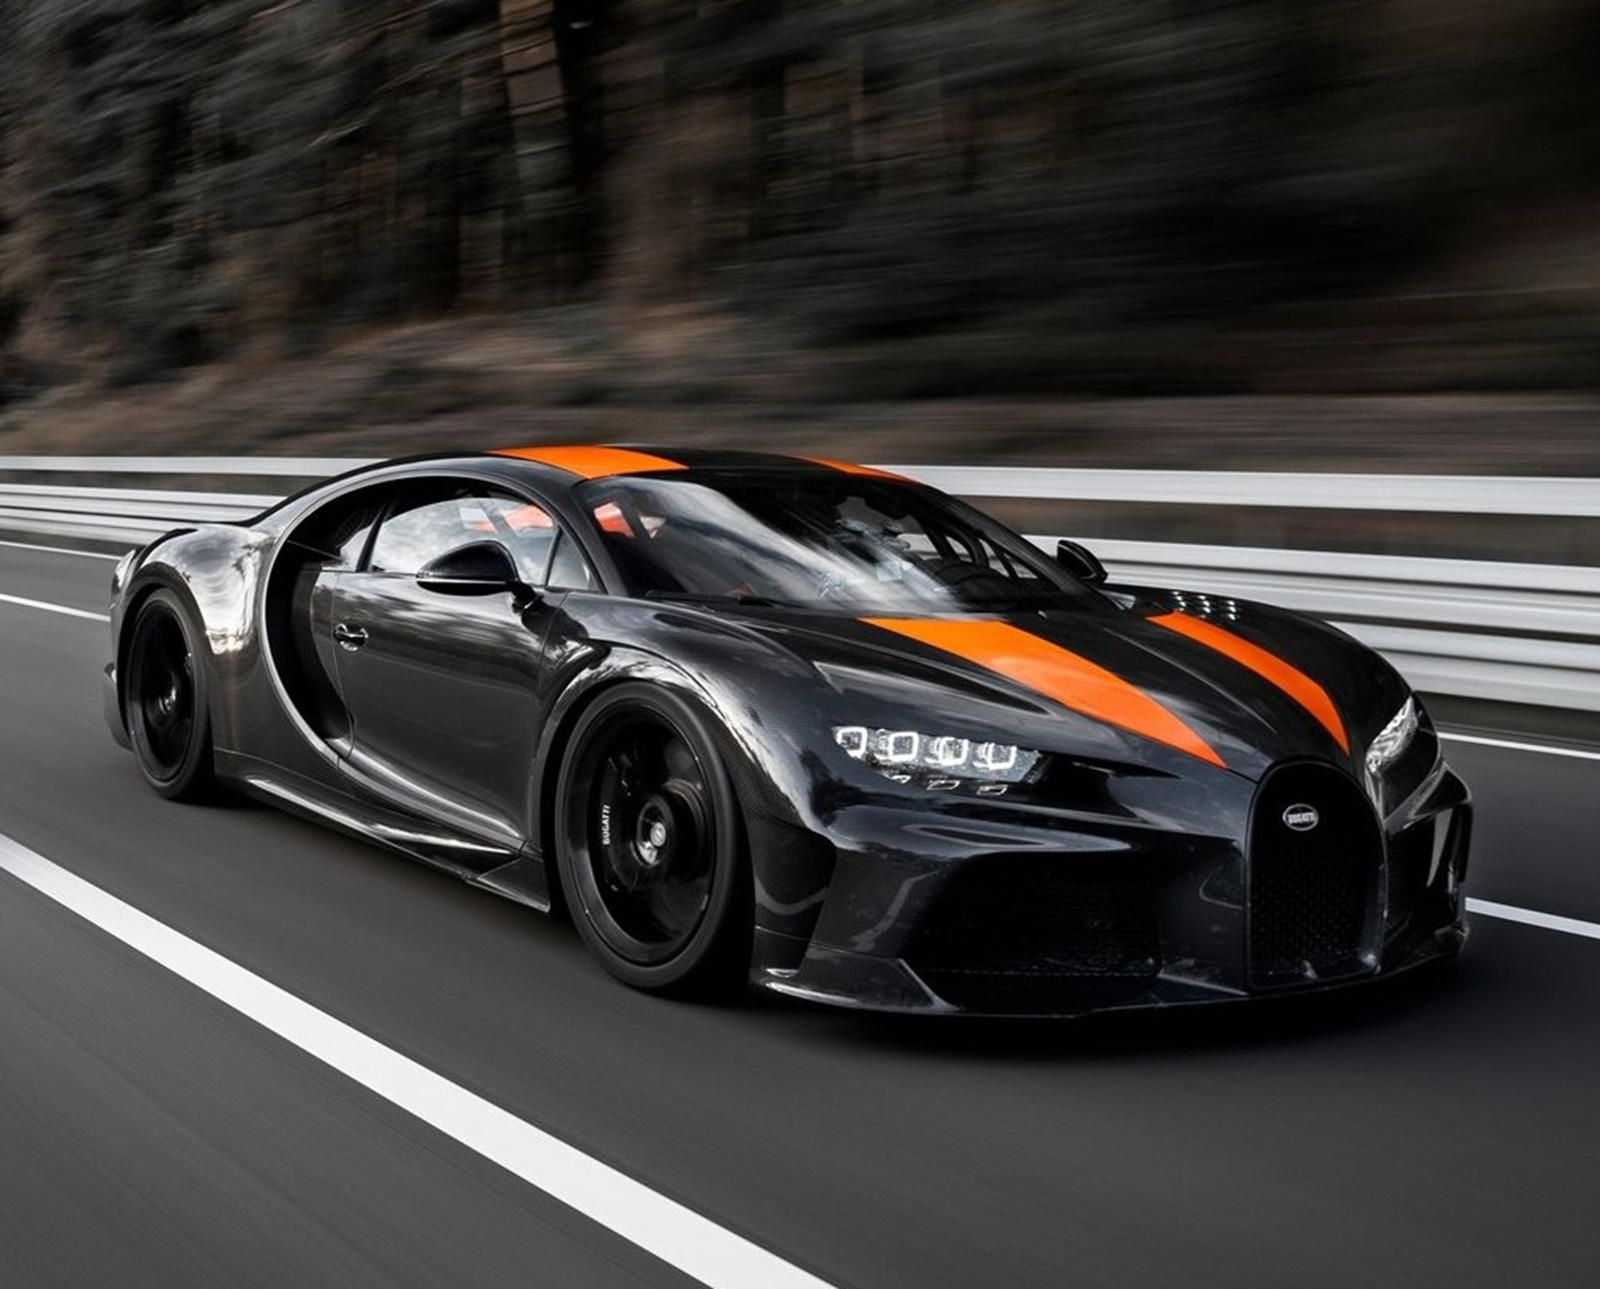 Bugatti Chiron S Unique Feature Isn T Going Anywhere 16 Cylinders Is What Makes It A Future Collectible In 2020 Bugatti Chiron Super Cars New Bugatti Chiron